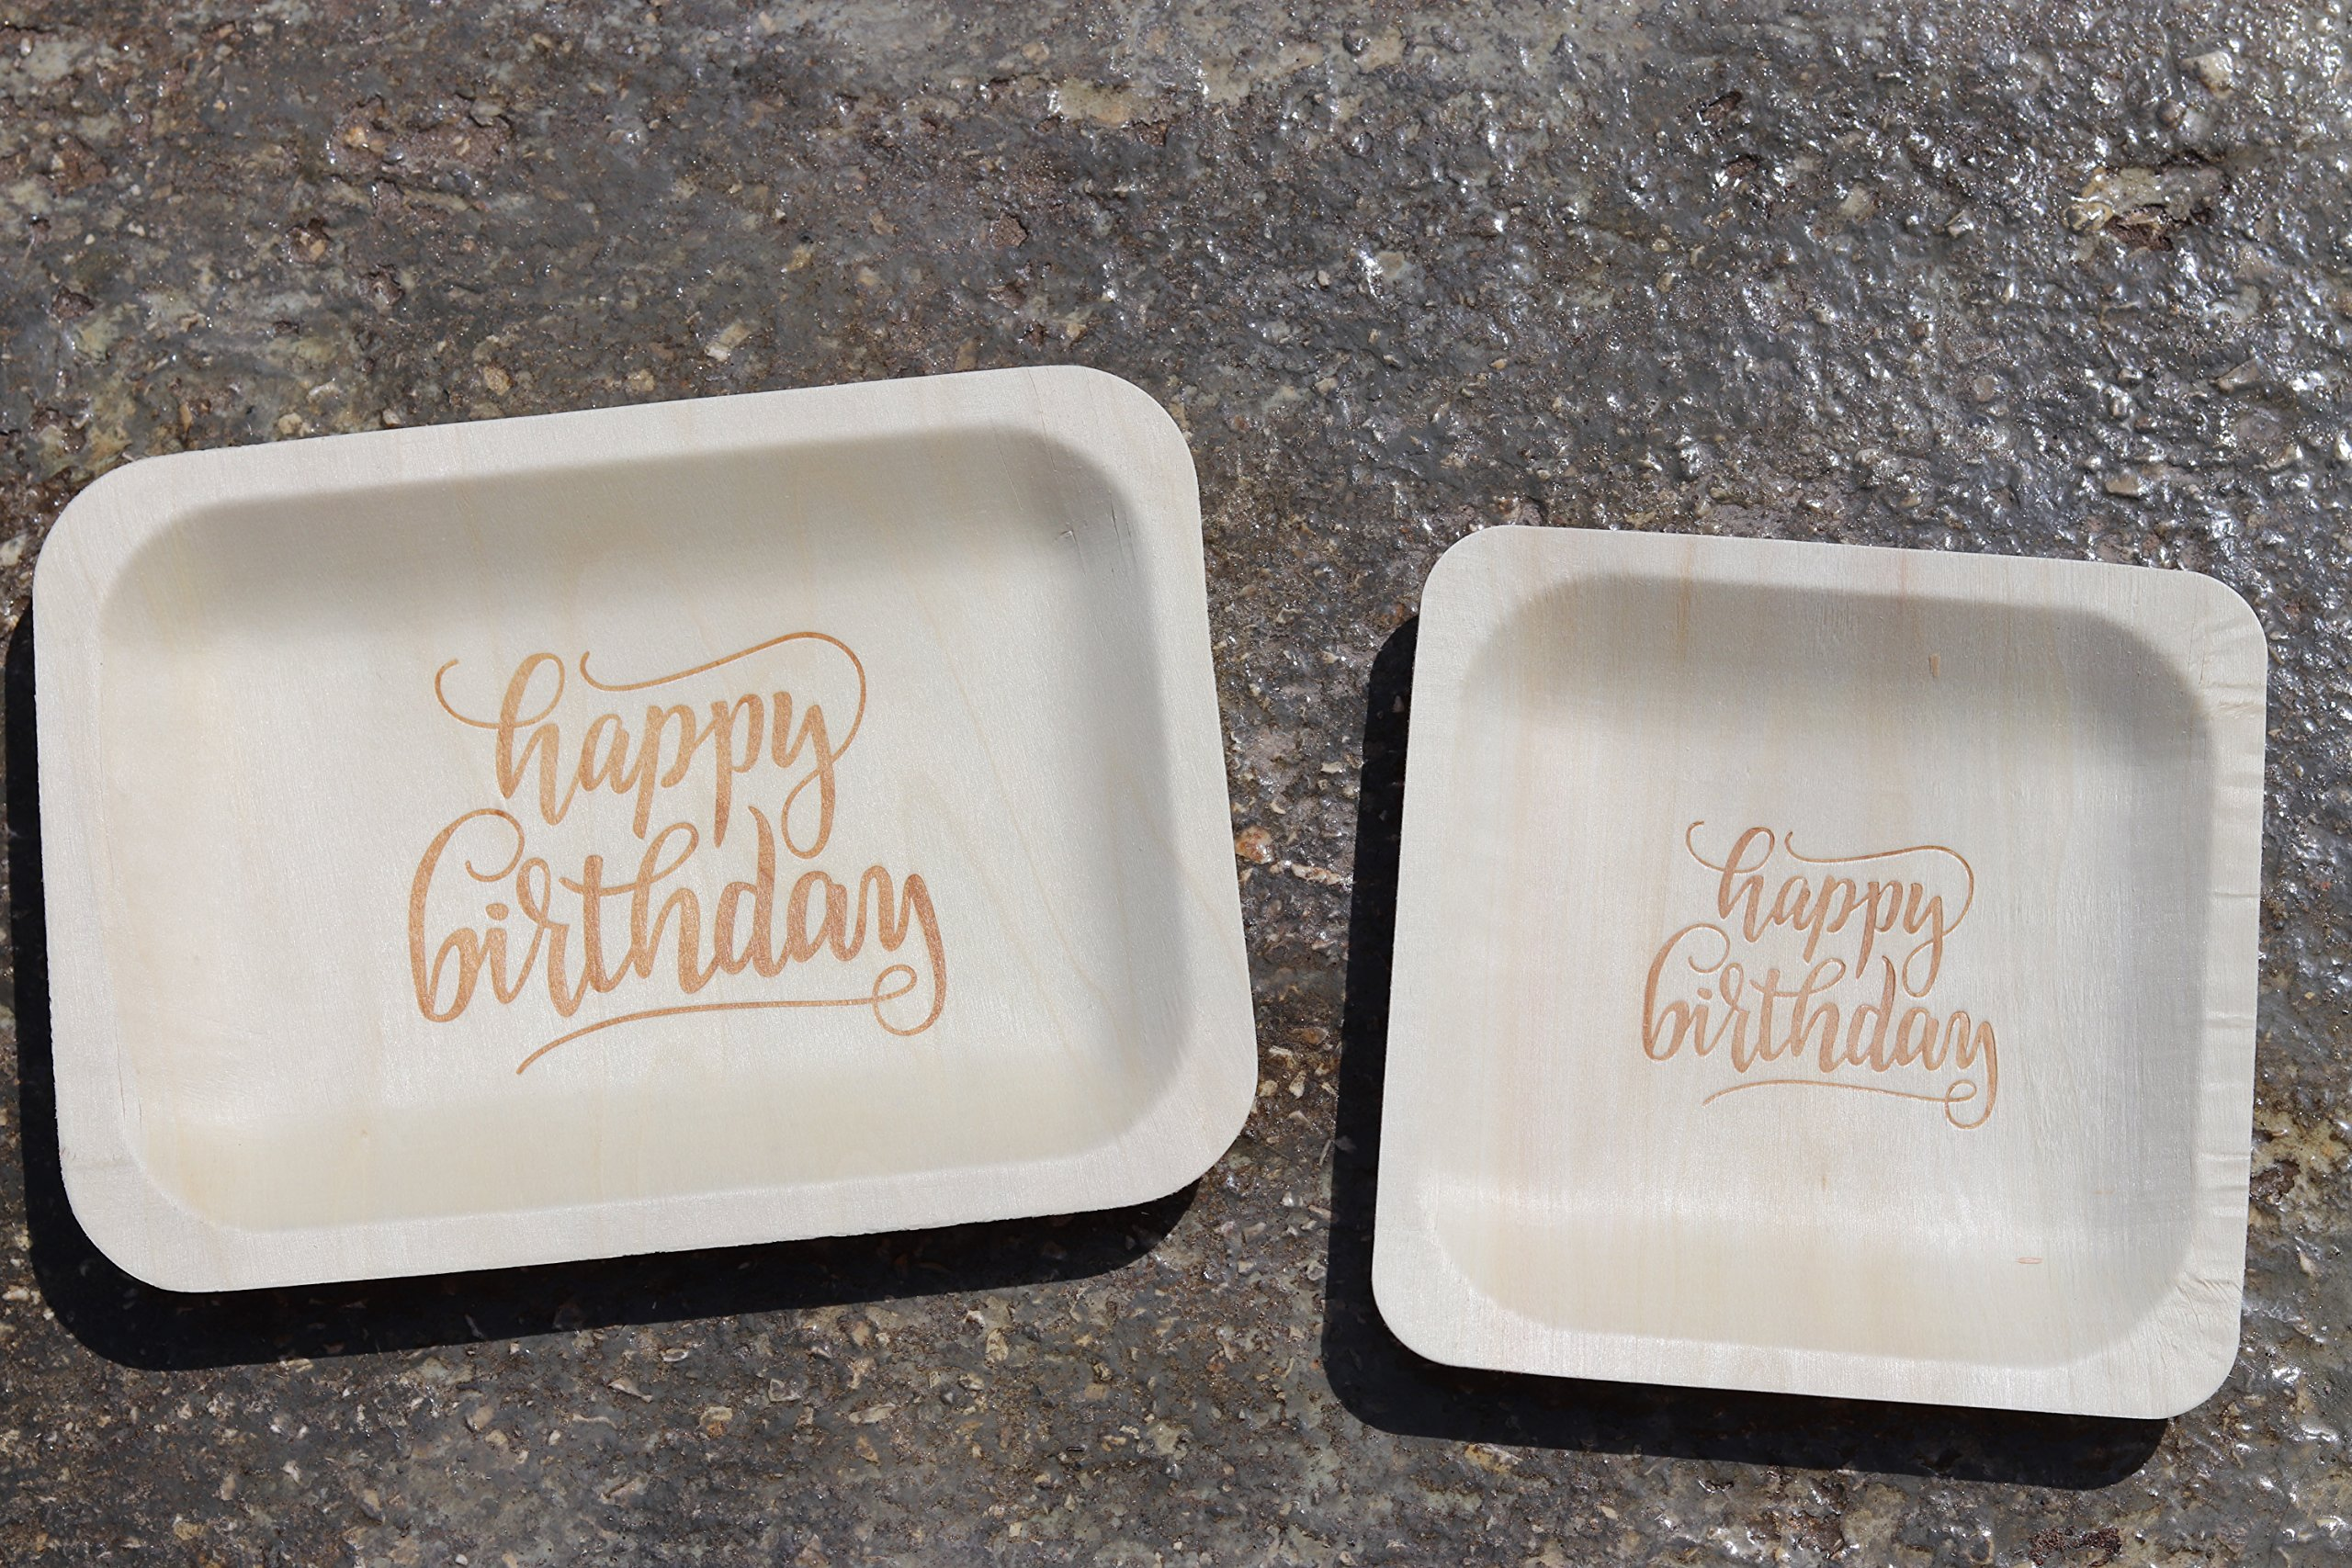 ''Happy Birthday'' StatementWare Disposable Birthday Plates (50-pack)—100% Natural and Eco-Friendly, Elegant Alternative to Happy Birthday Plates, Plastic Party Plates, and Cake Plates (7.5'' x 5.5'') by Wood & Wonder (Image #7)